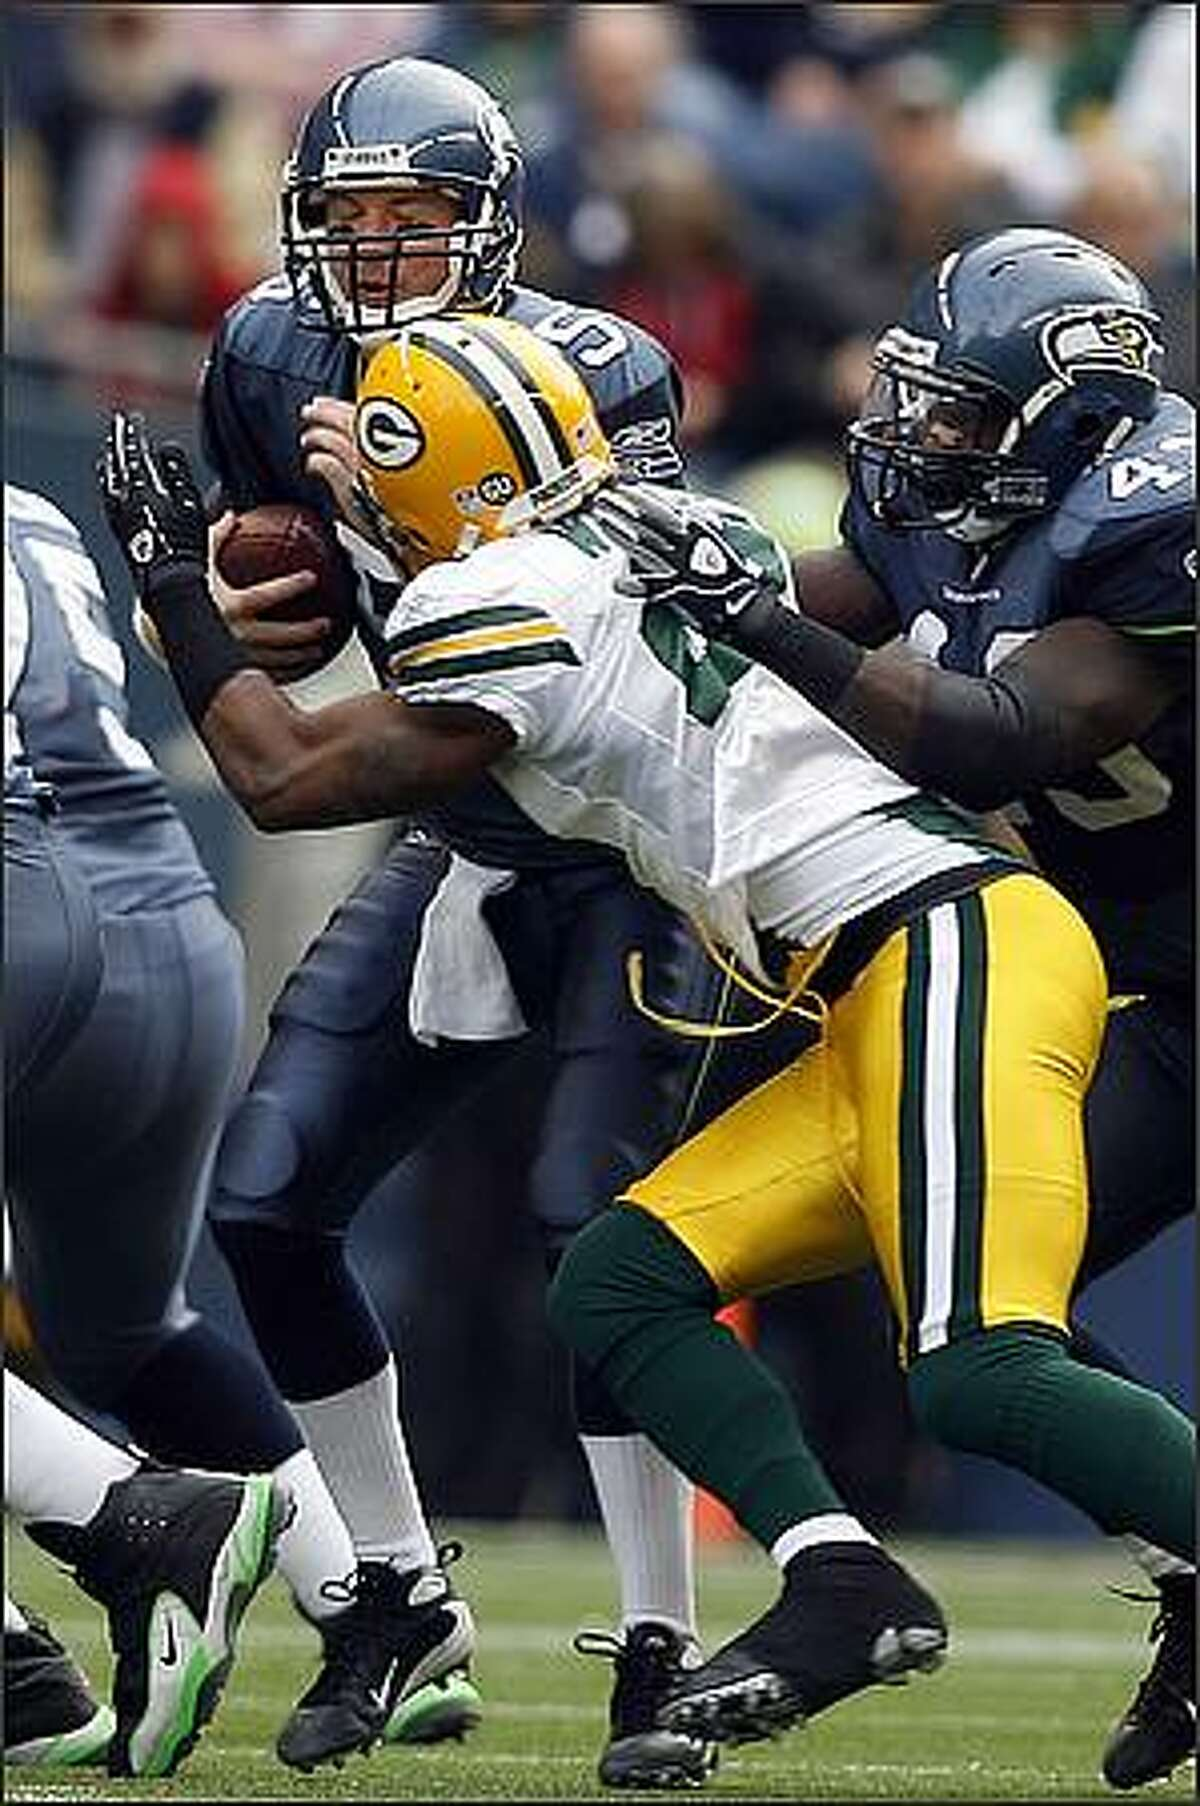 Seattle Seahawks quarterback Charlie Frye is sacked for a loss of five yards by Green Bay Packers cornerback Charles Woodson during the first quarter.